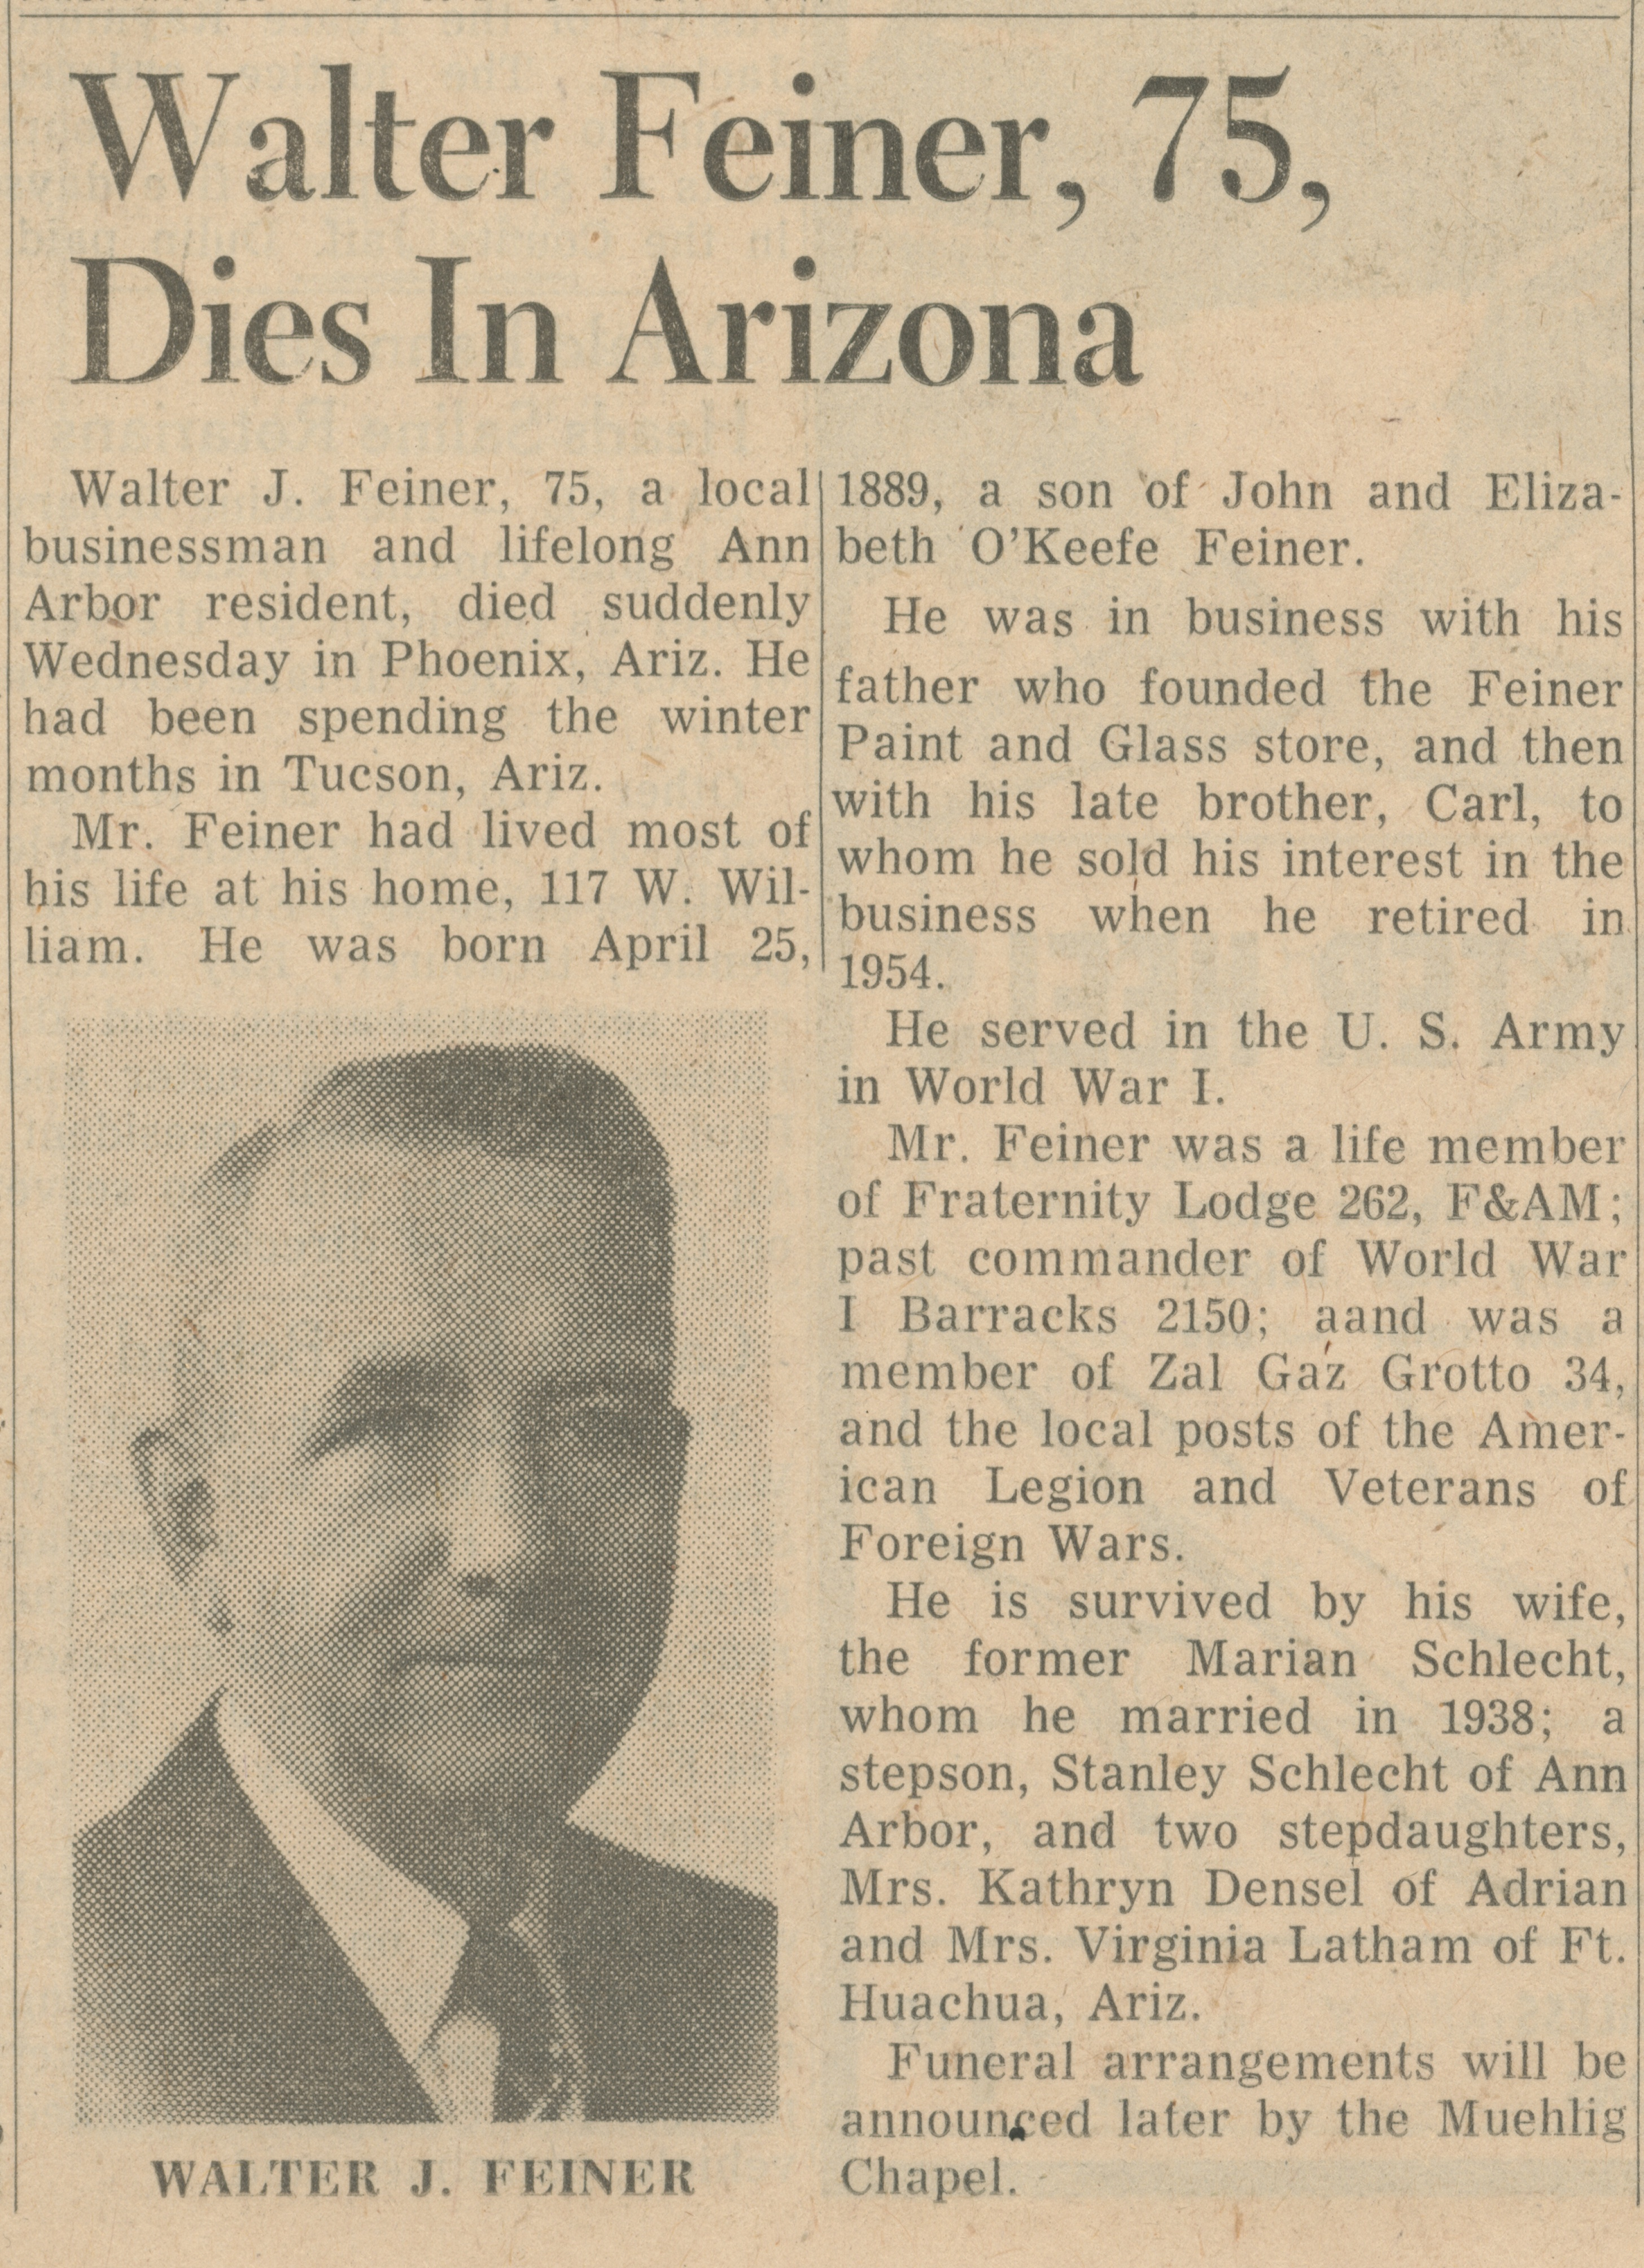 Walter Feiner, 75, Dies In Arizona image